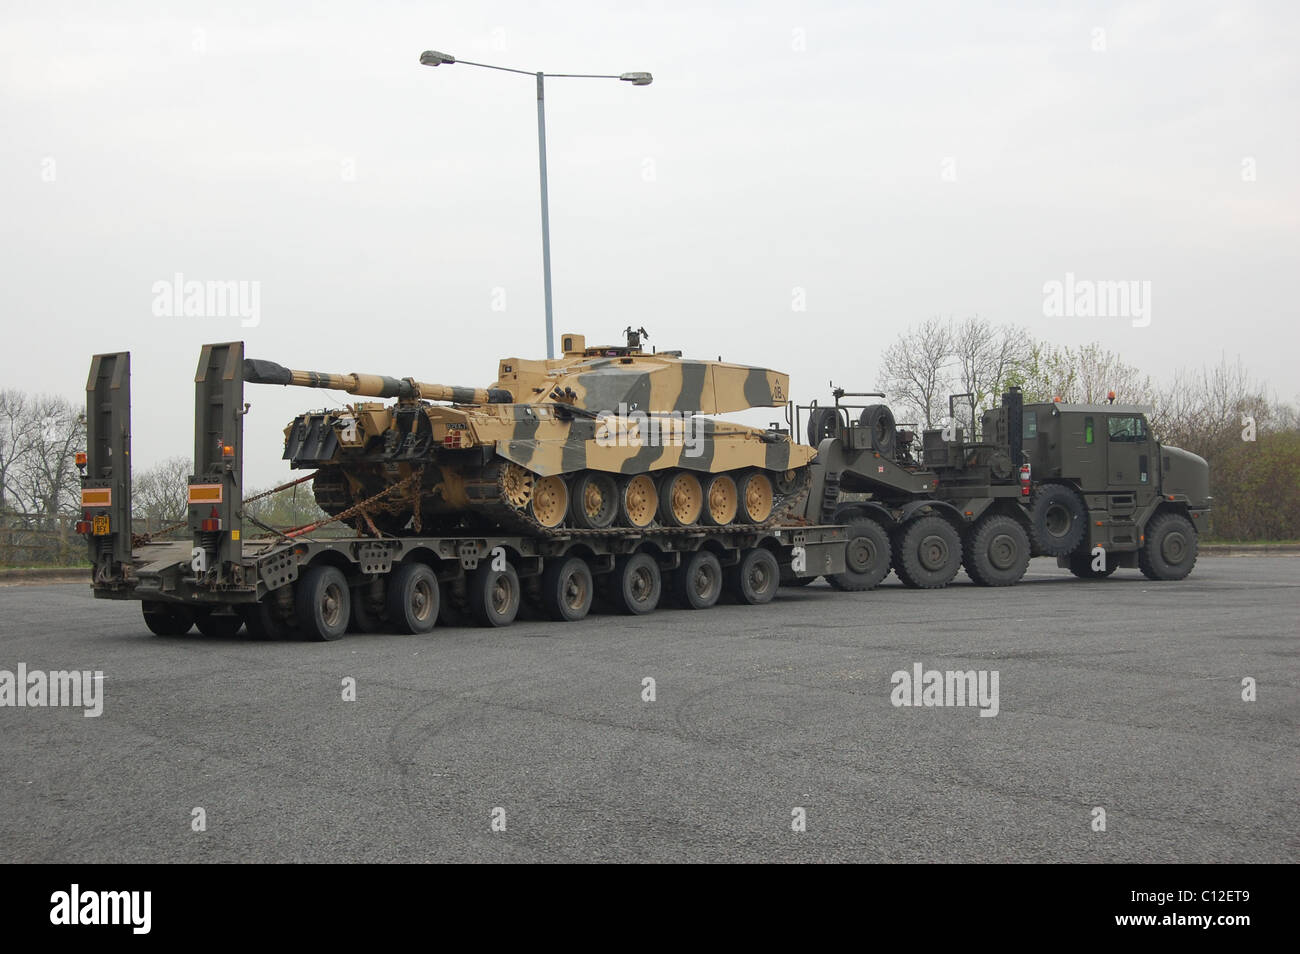 Self Propelled Cart >> The Heavy Equipment Transport System (HETS) is a military logistics Stock Photo: 35090953 - Alamy